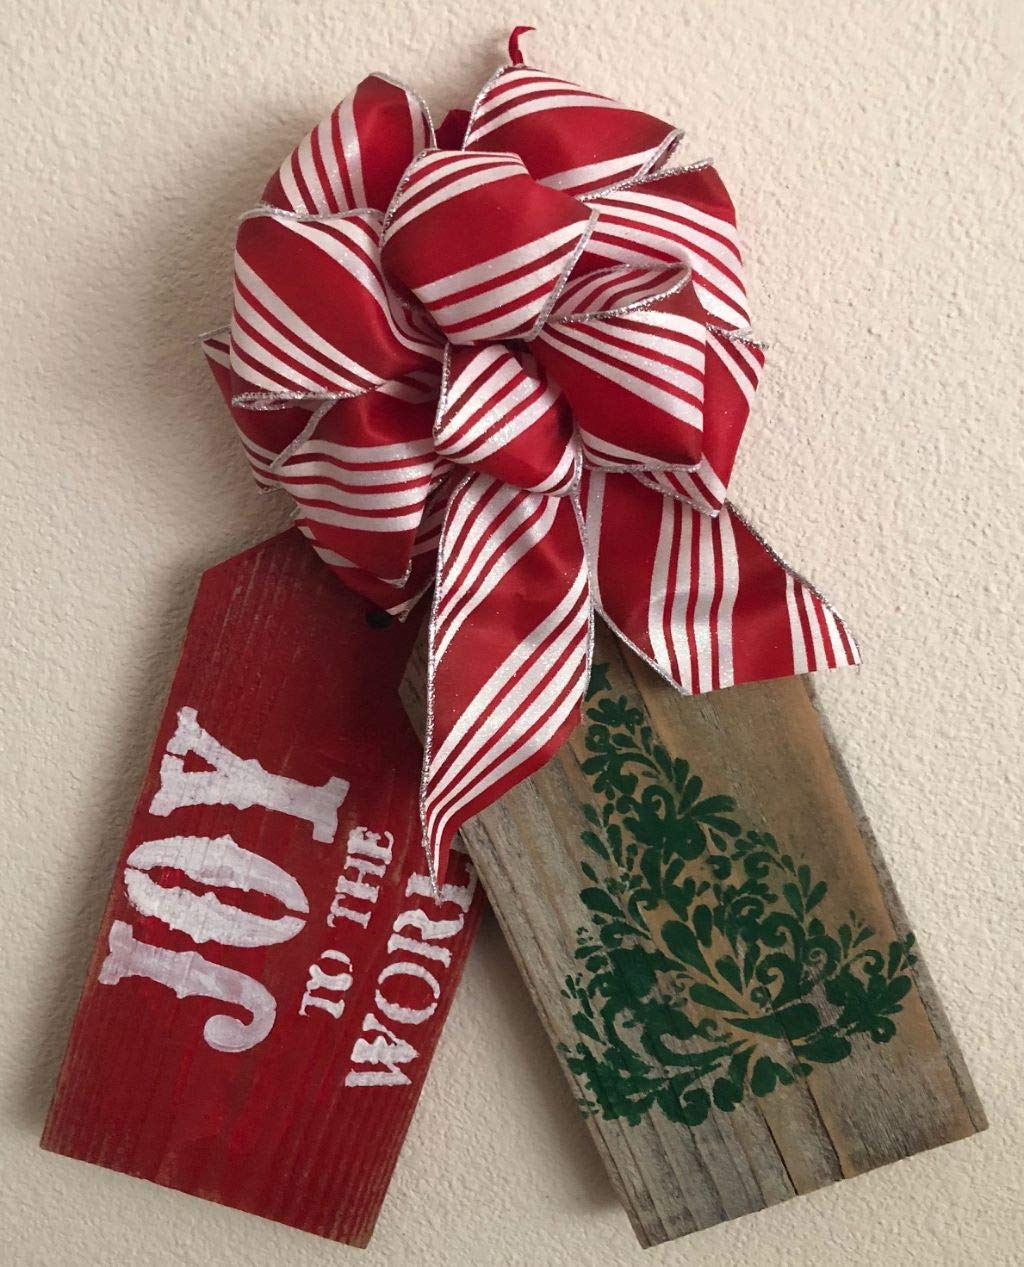 Home Made Joy to The World Door Tags